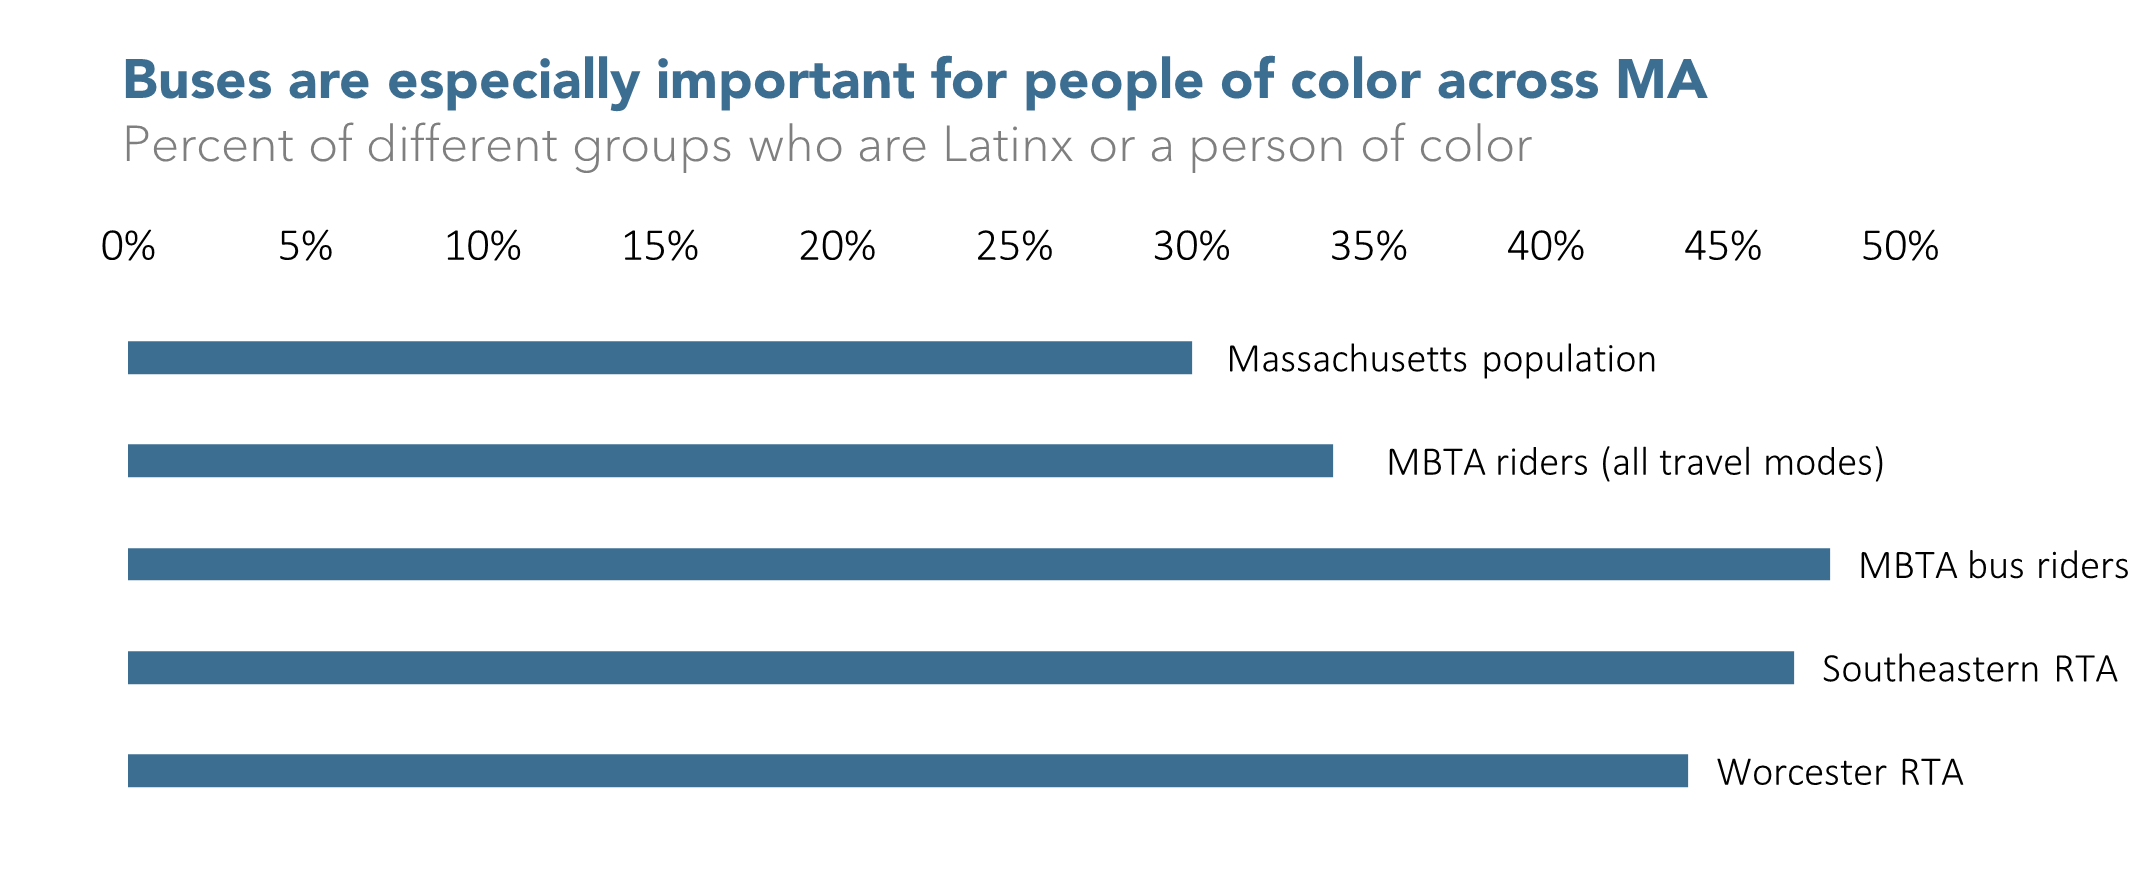 Buses are especially important for people of color across MA